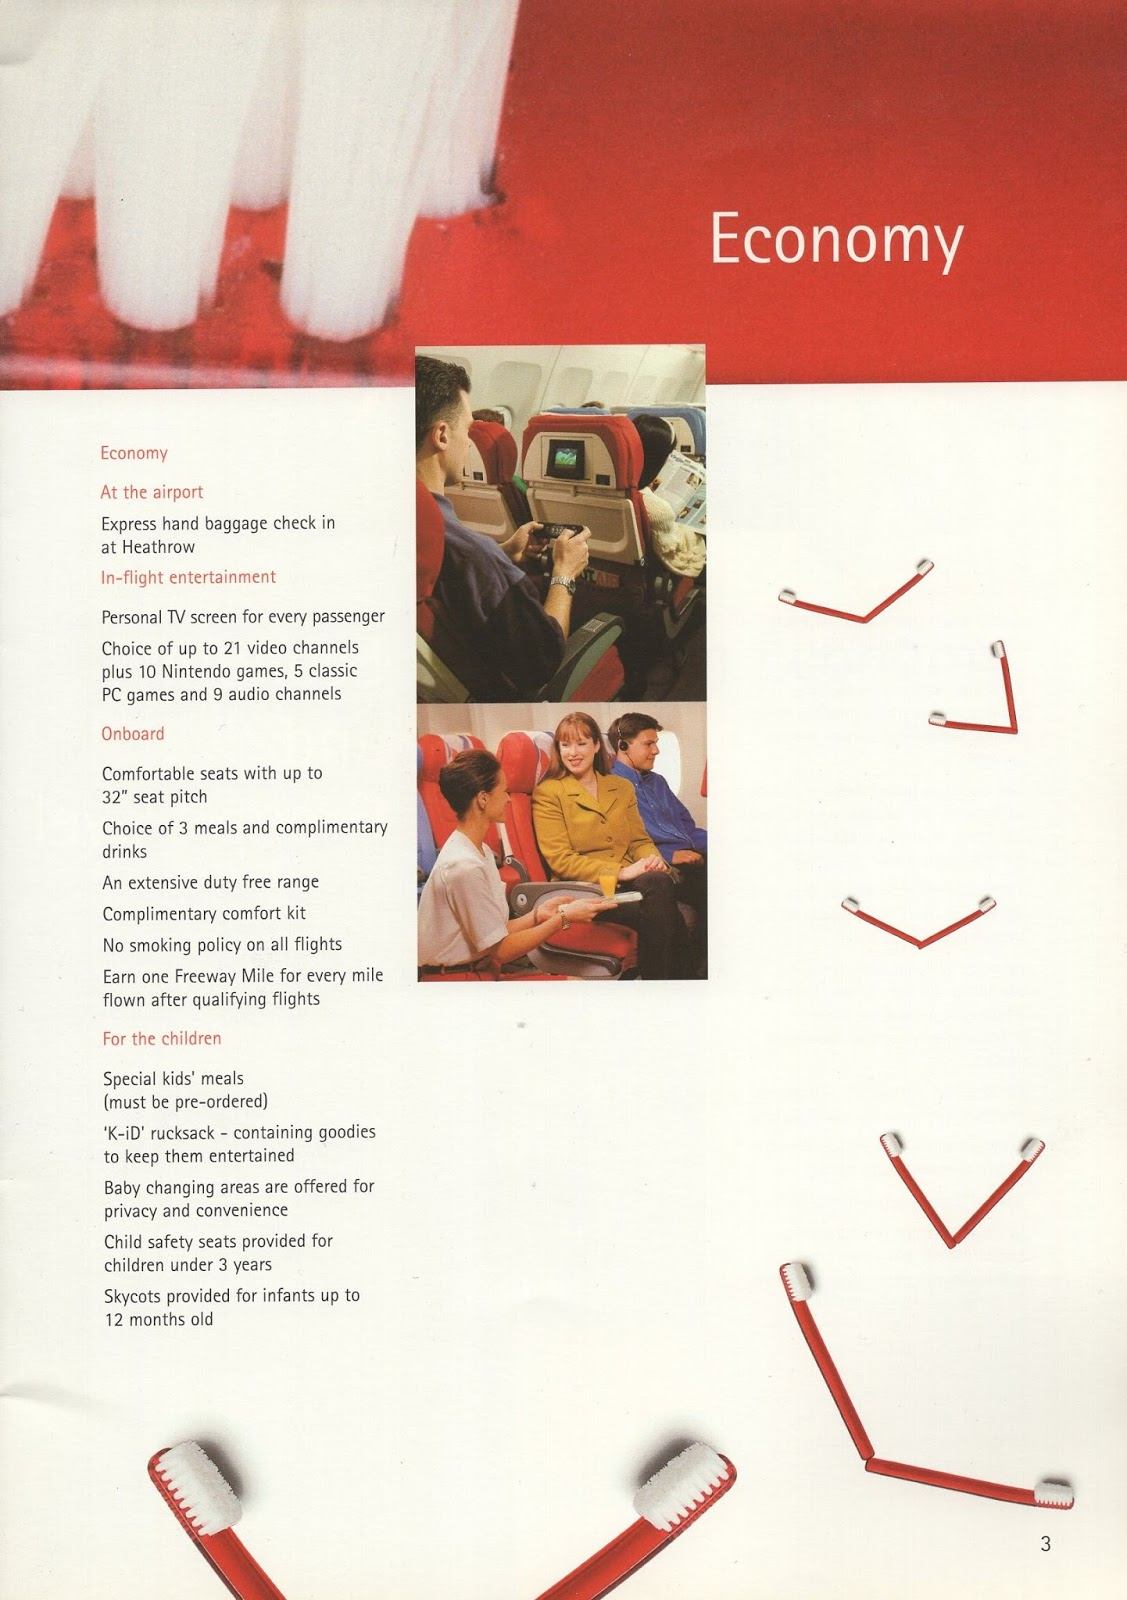 Airline memorabilia: Virgin Atlantic (1997)